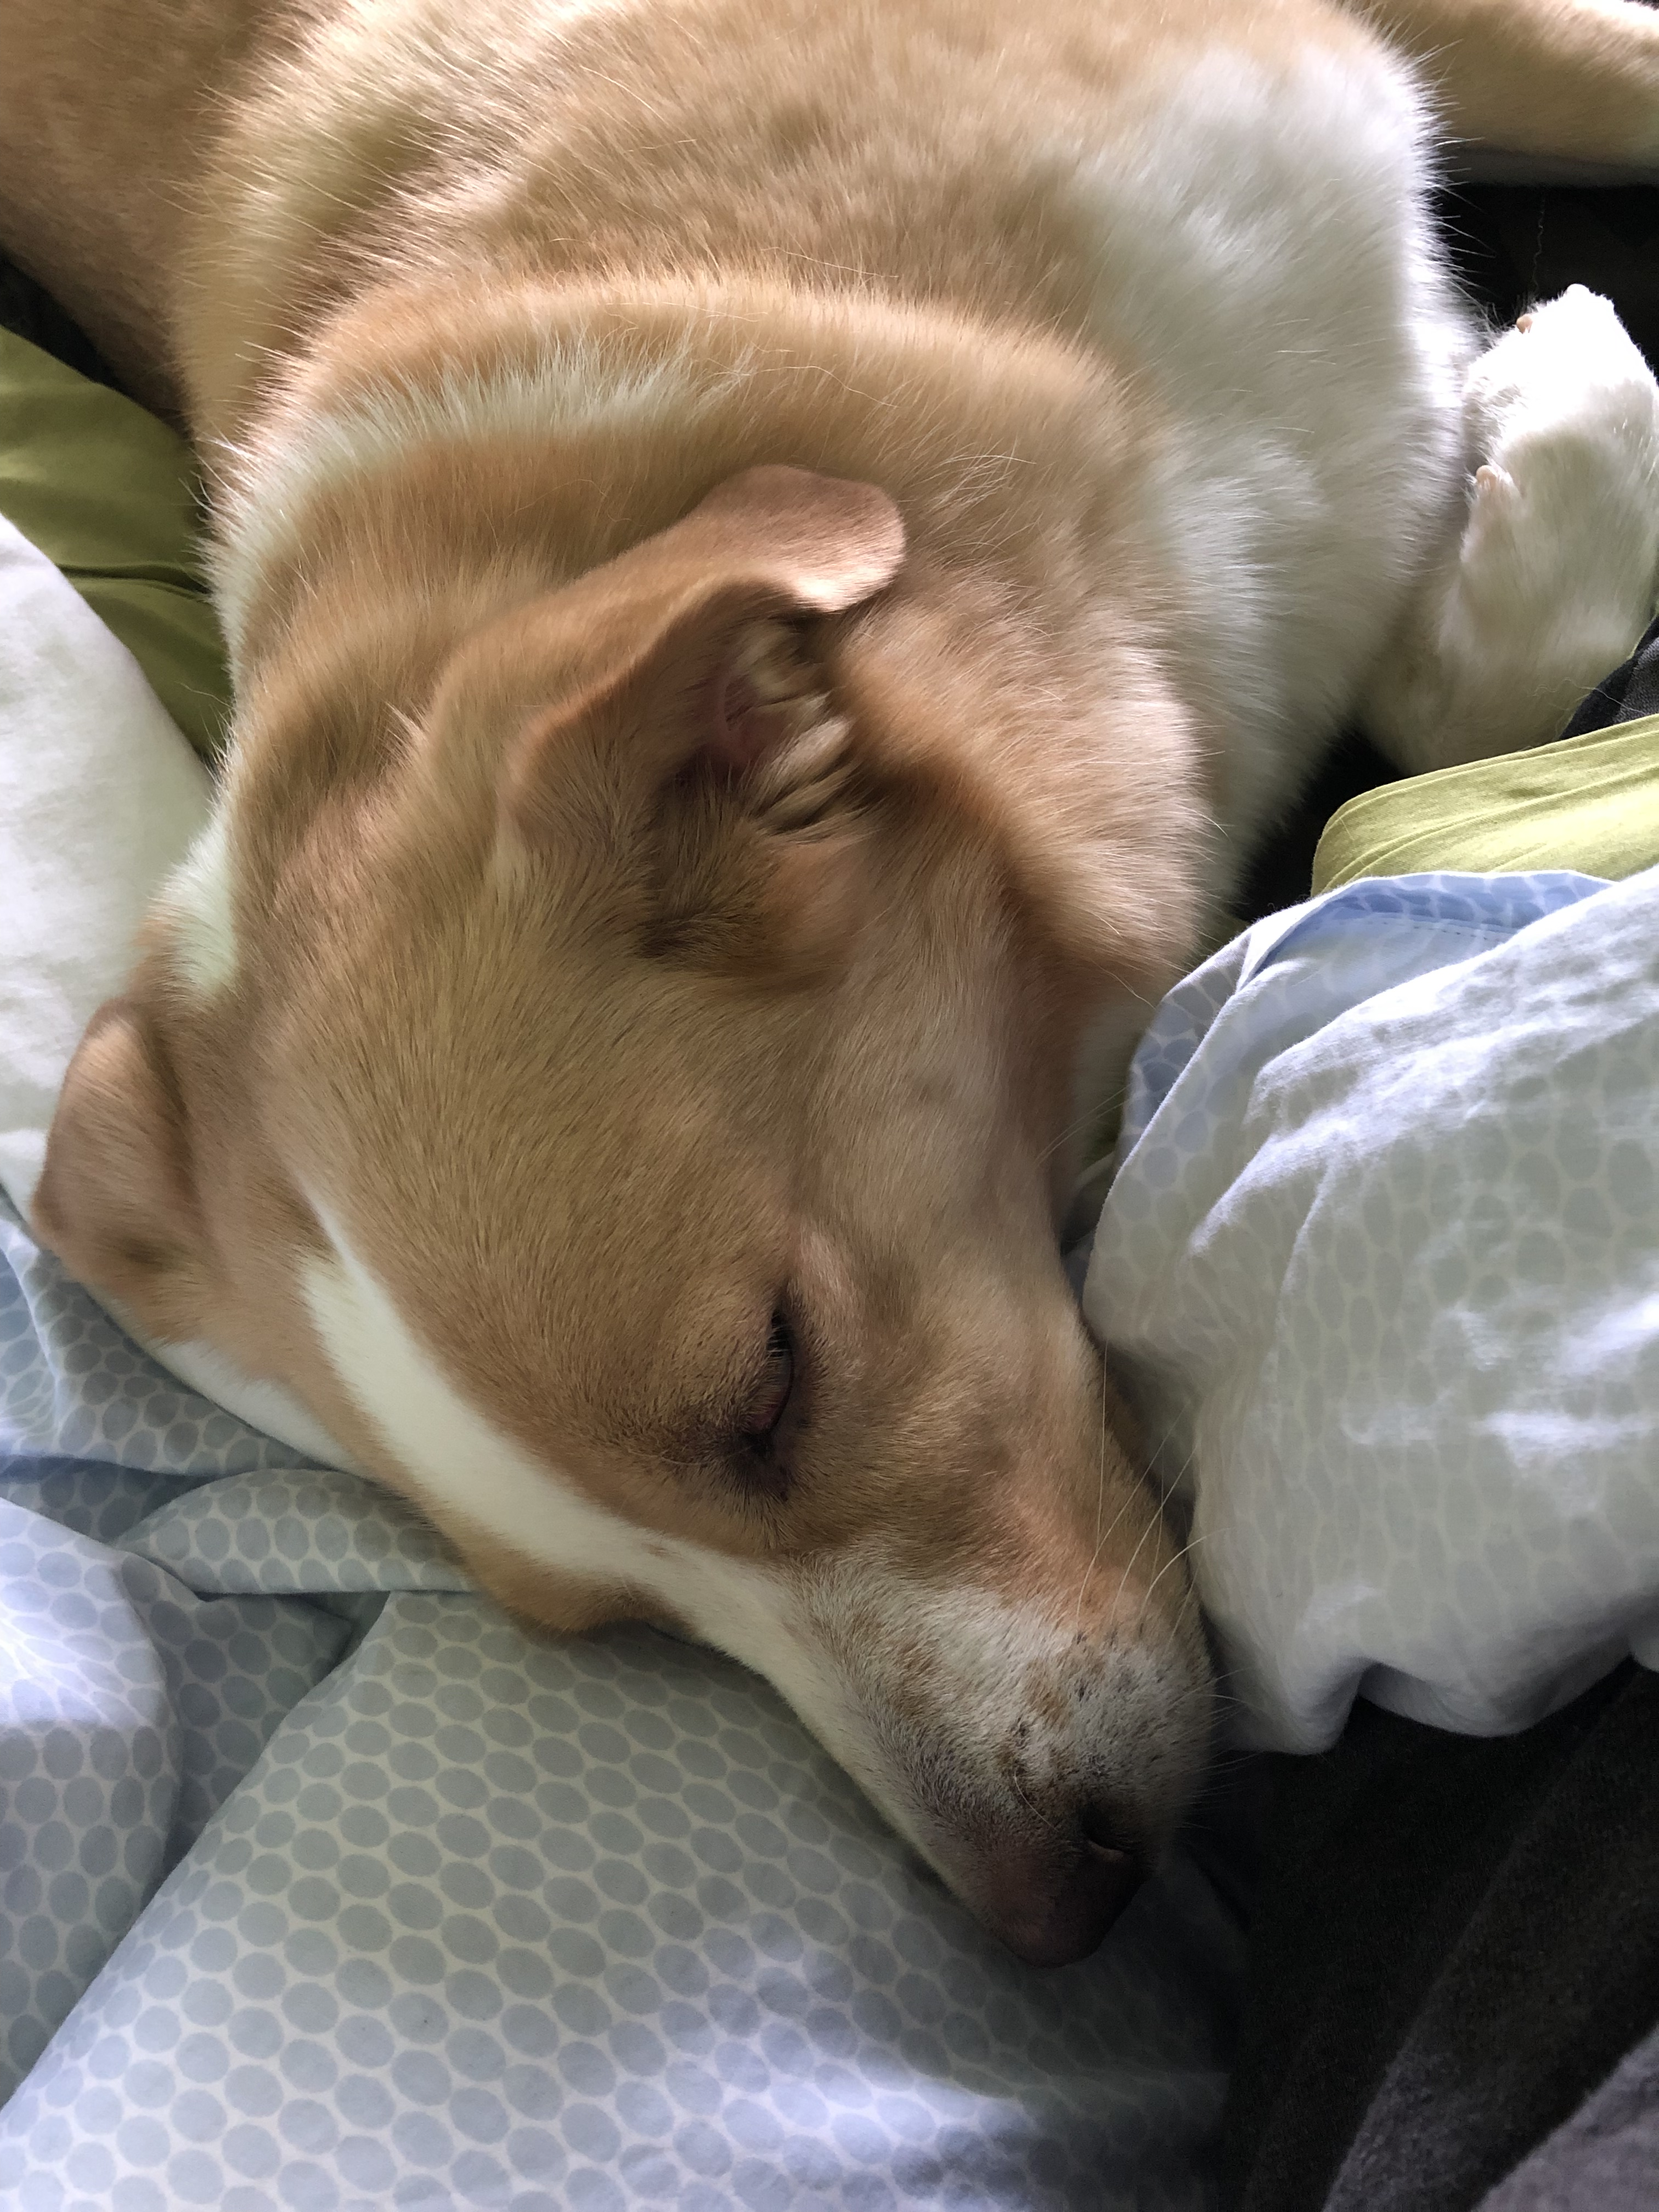 A dog with light brown and white fur is sleeping on a bed.